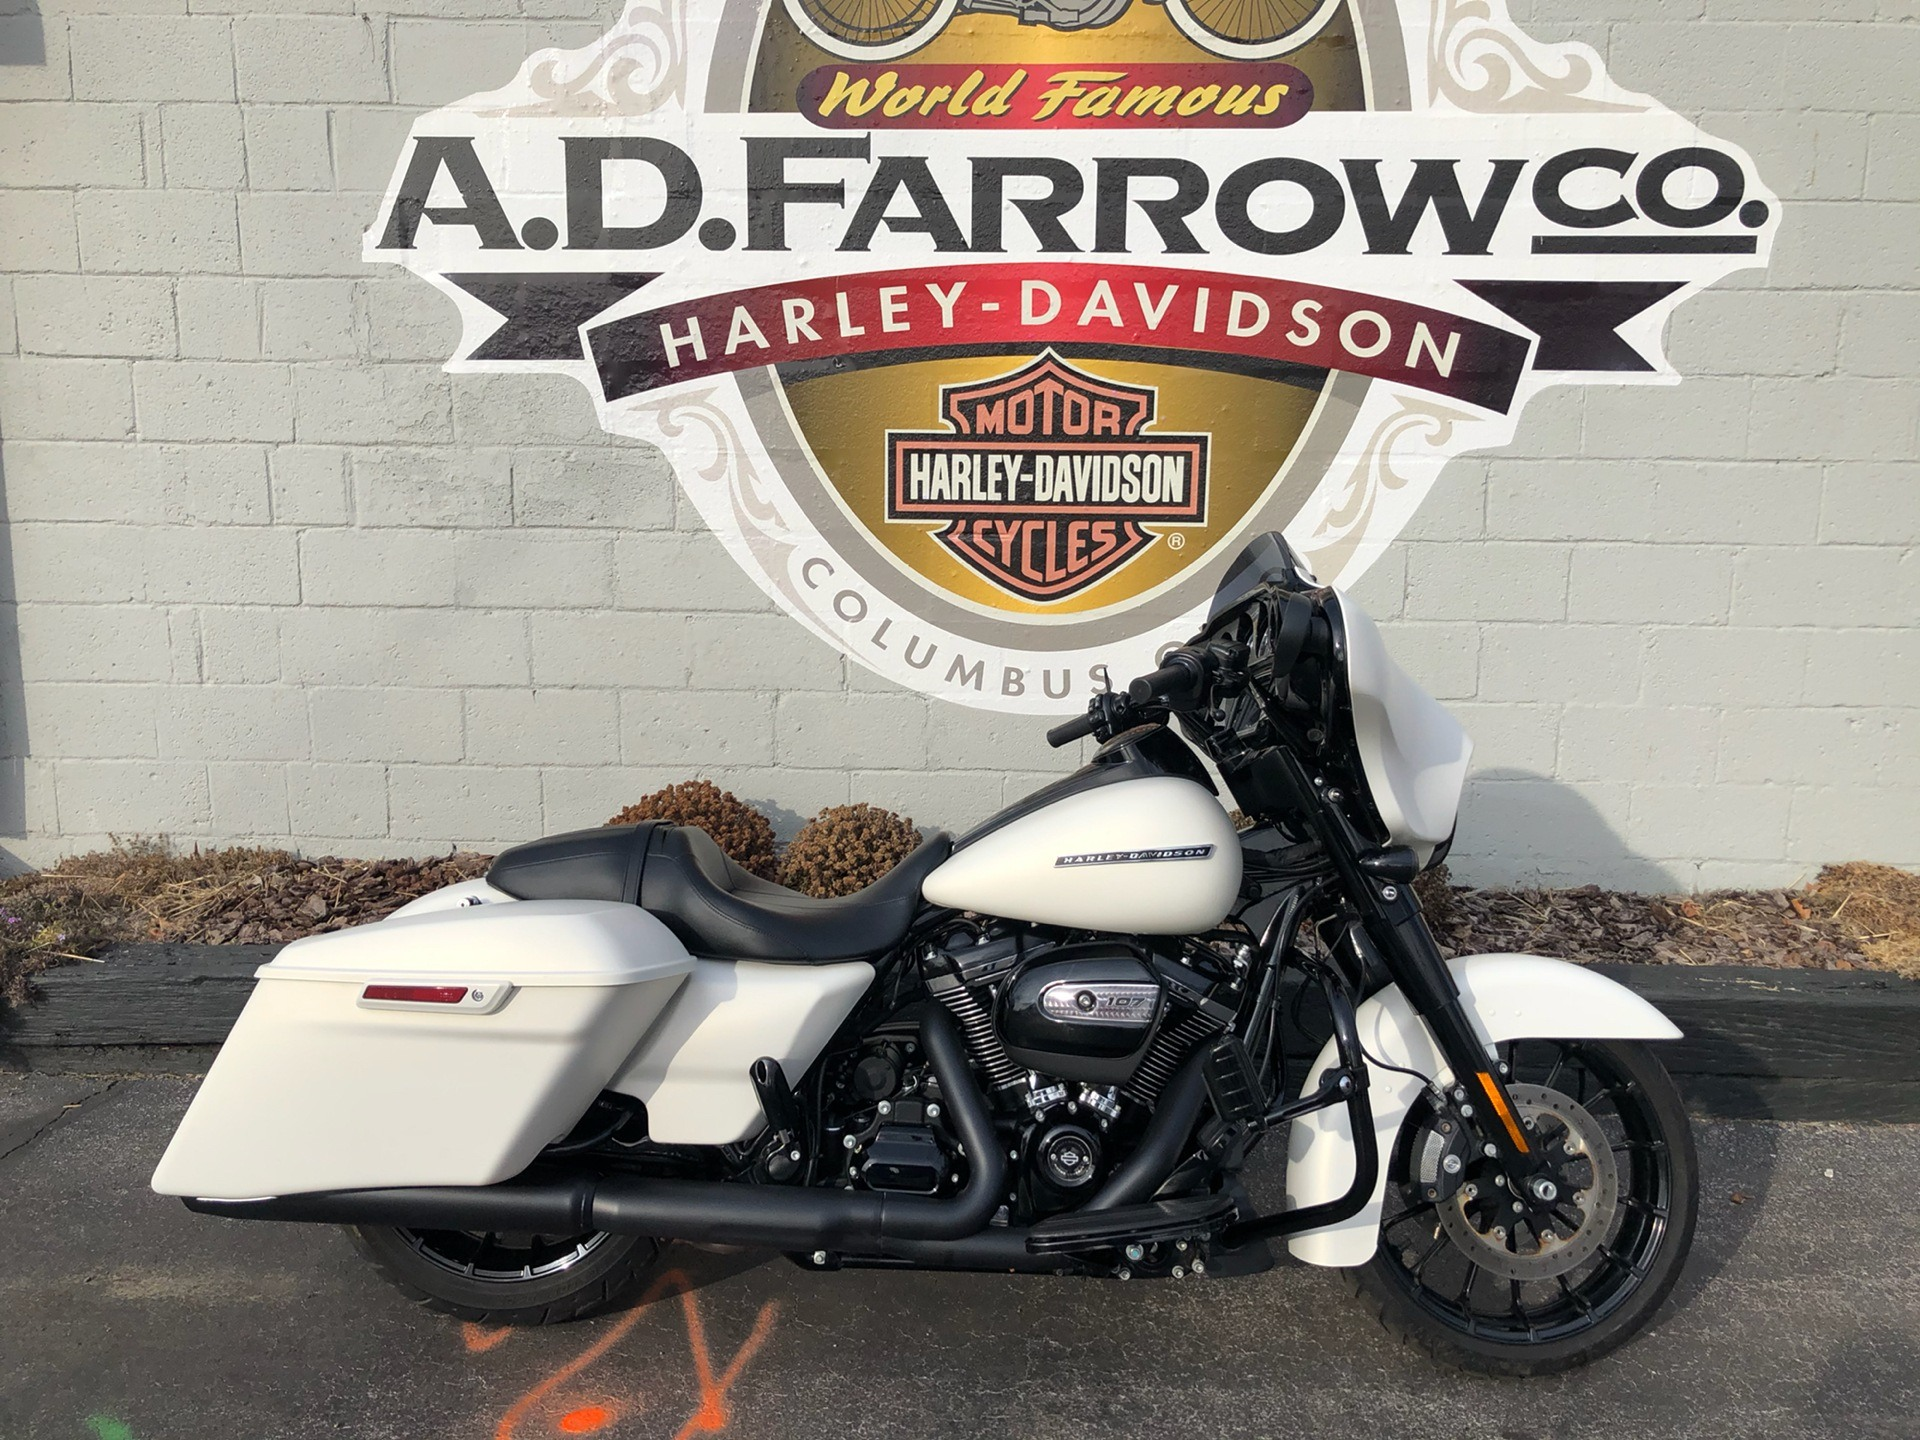 2018 Harley-Davidson FLTRXS in Sunbury, Ohio - Photo 1